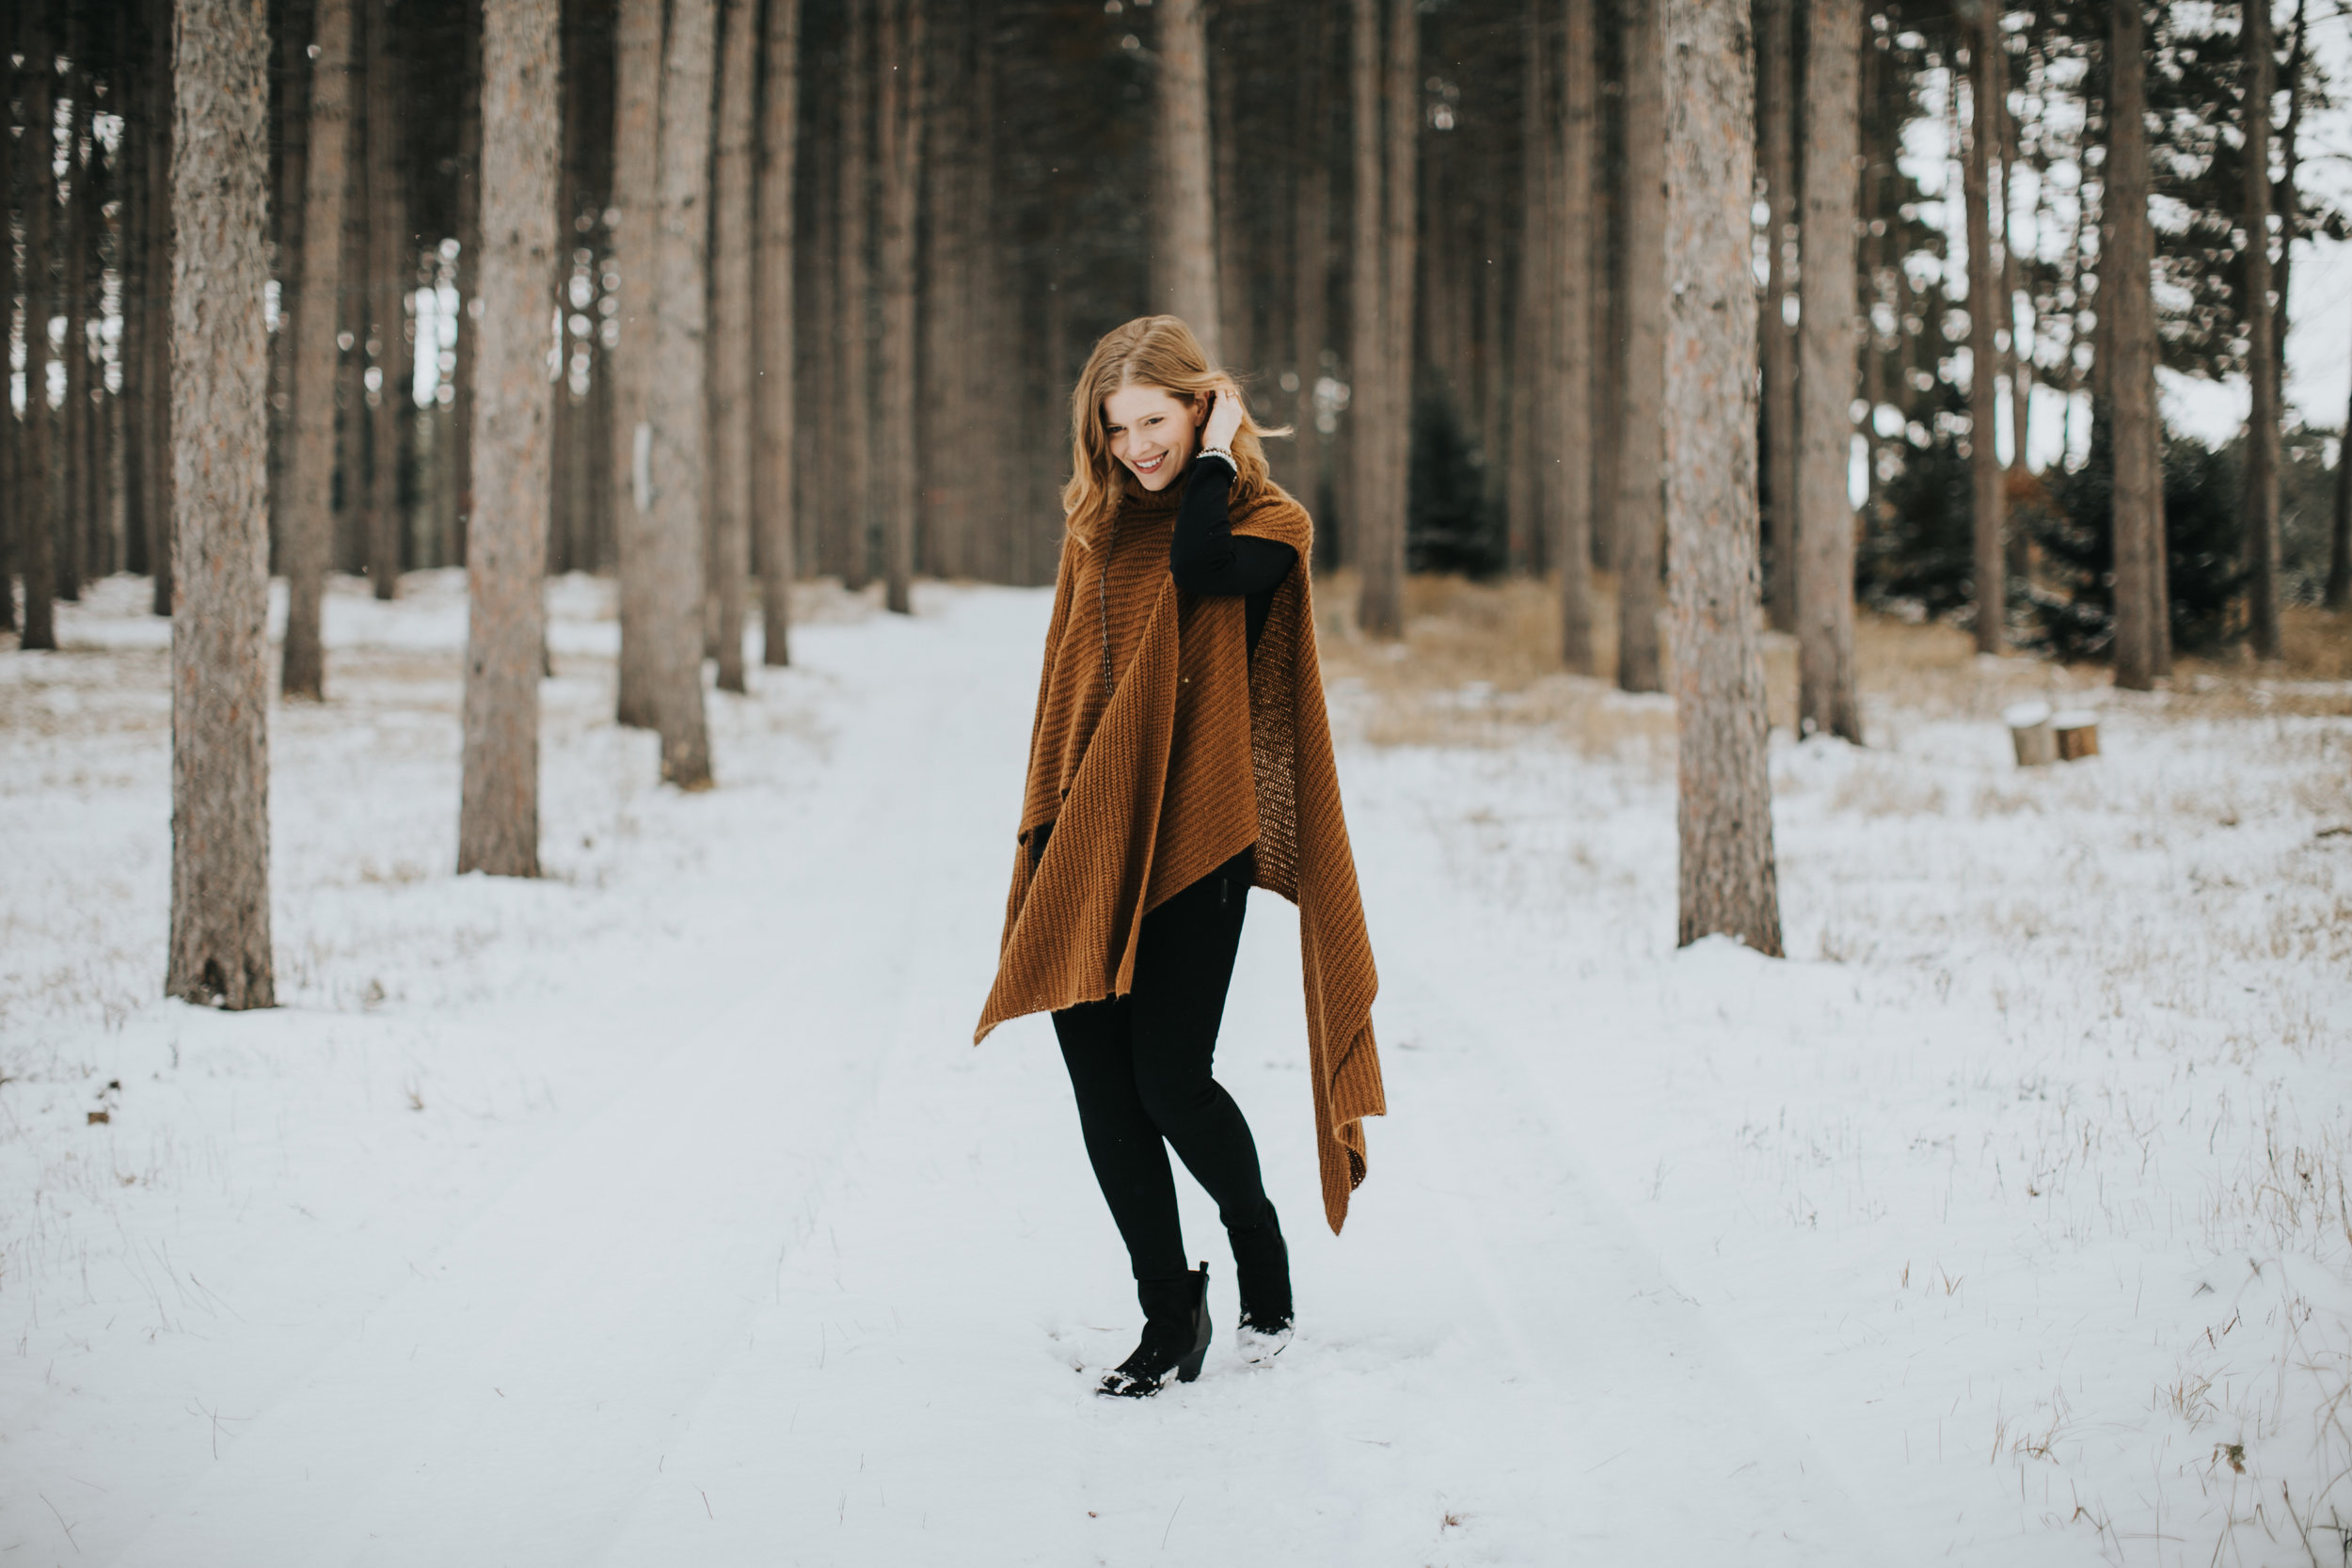 MainstreamBoutique-2018-Holiday-Russell-Heeter-Photography-28.jpg